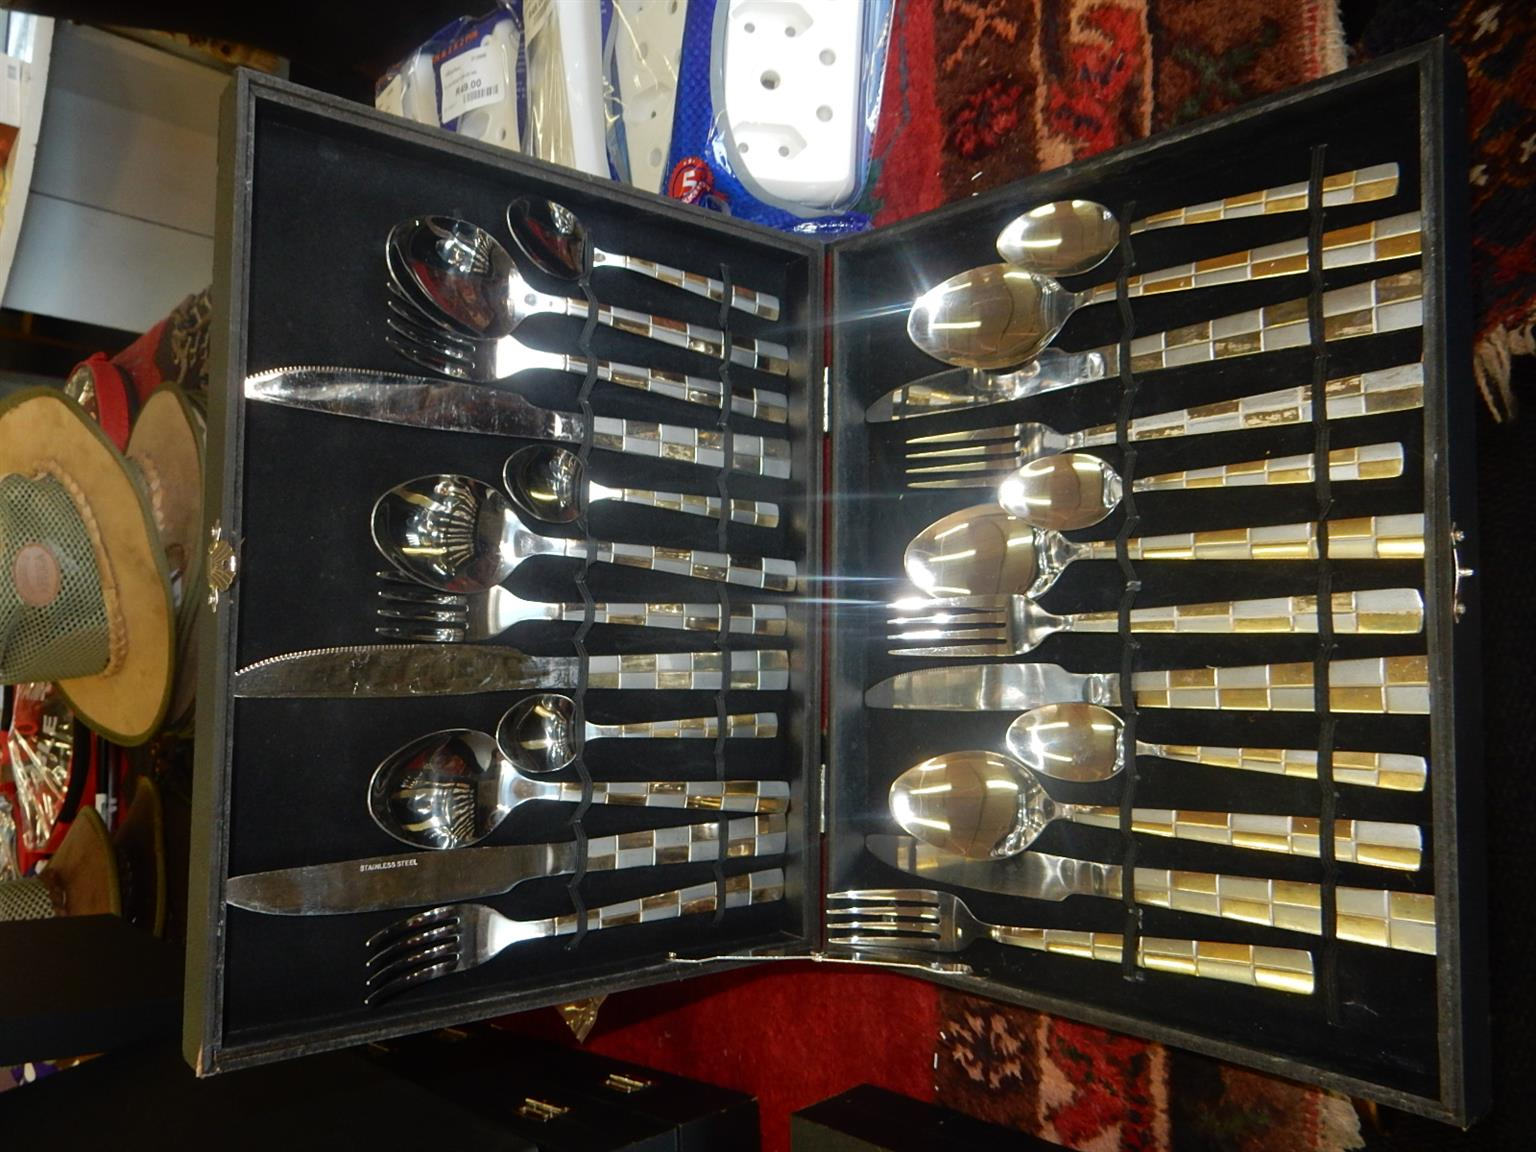 8x 24pc. Stainless Steel Cutlery Set